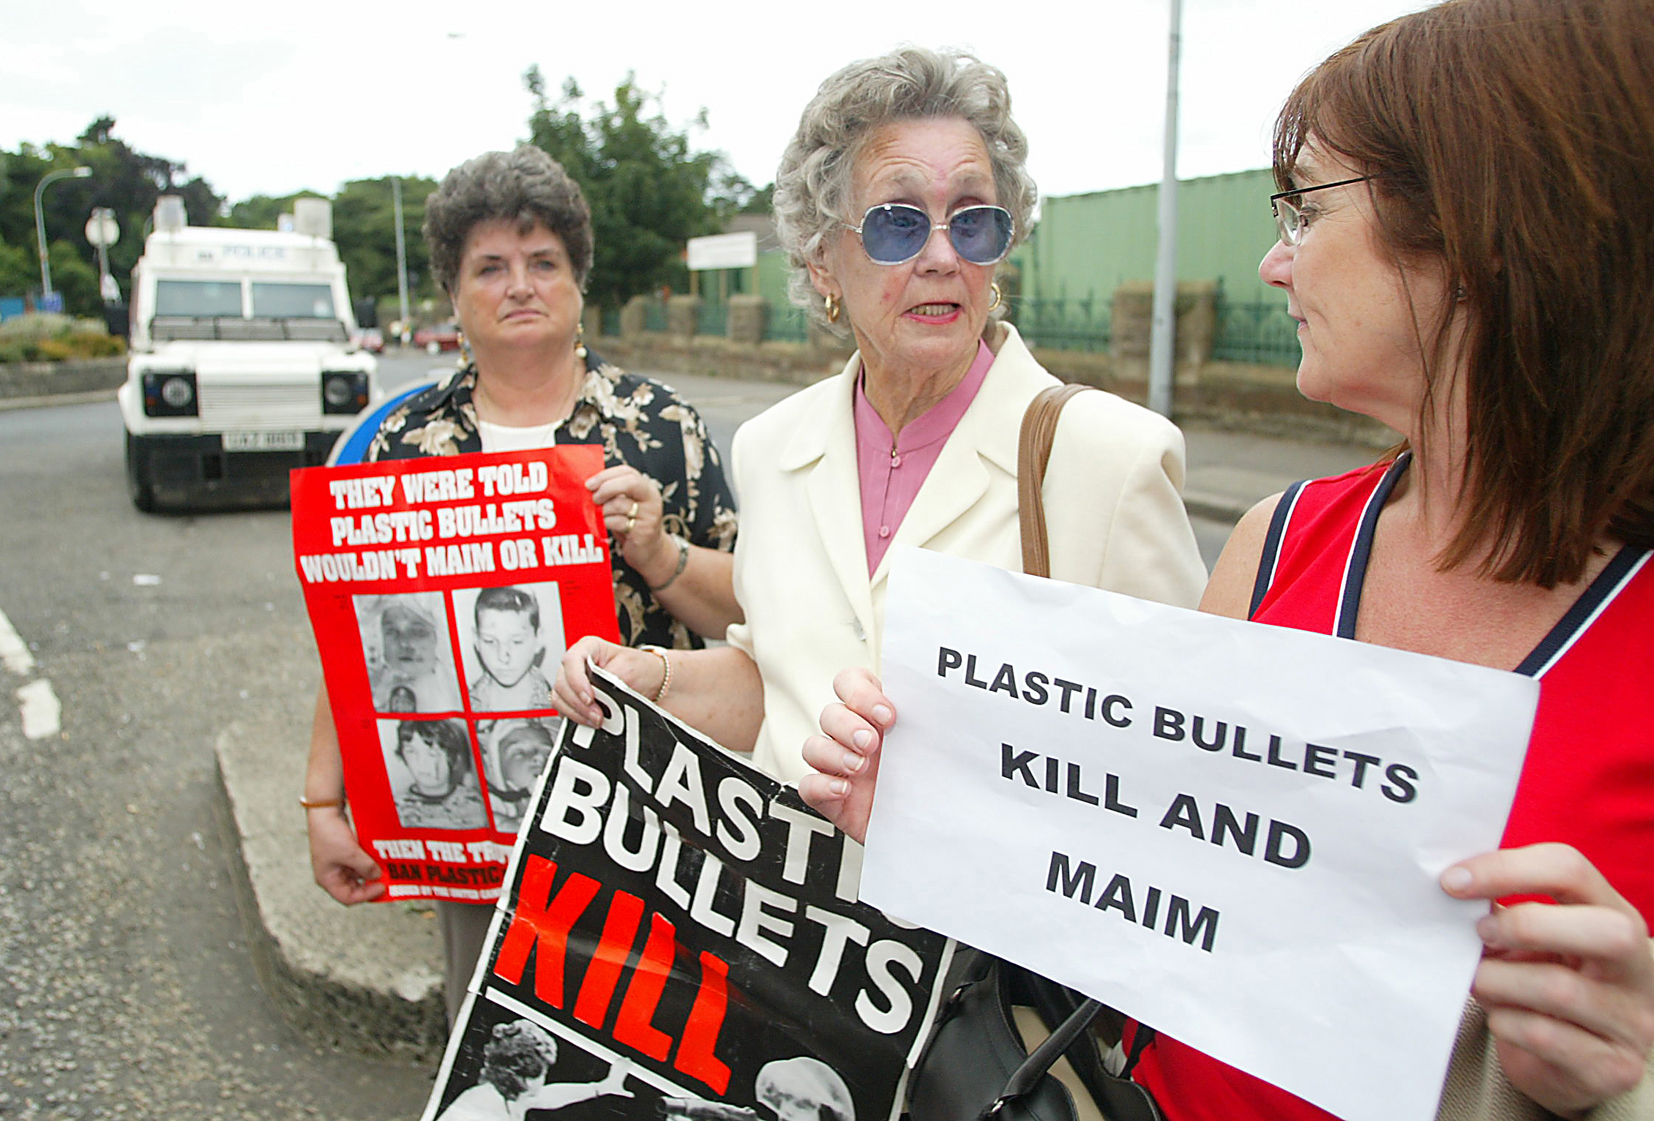 STANDING TOGETHER: Clara Reilly, left, Emma Groves and Elizabeth Livingstone at a plastic bullets vigil at the Andersonstown Barracks site